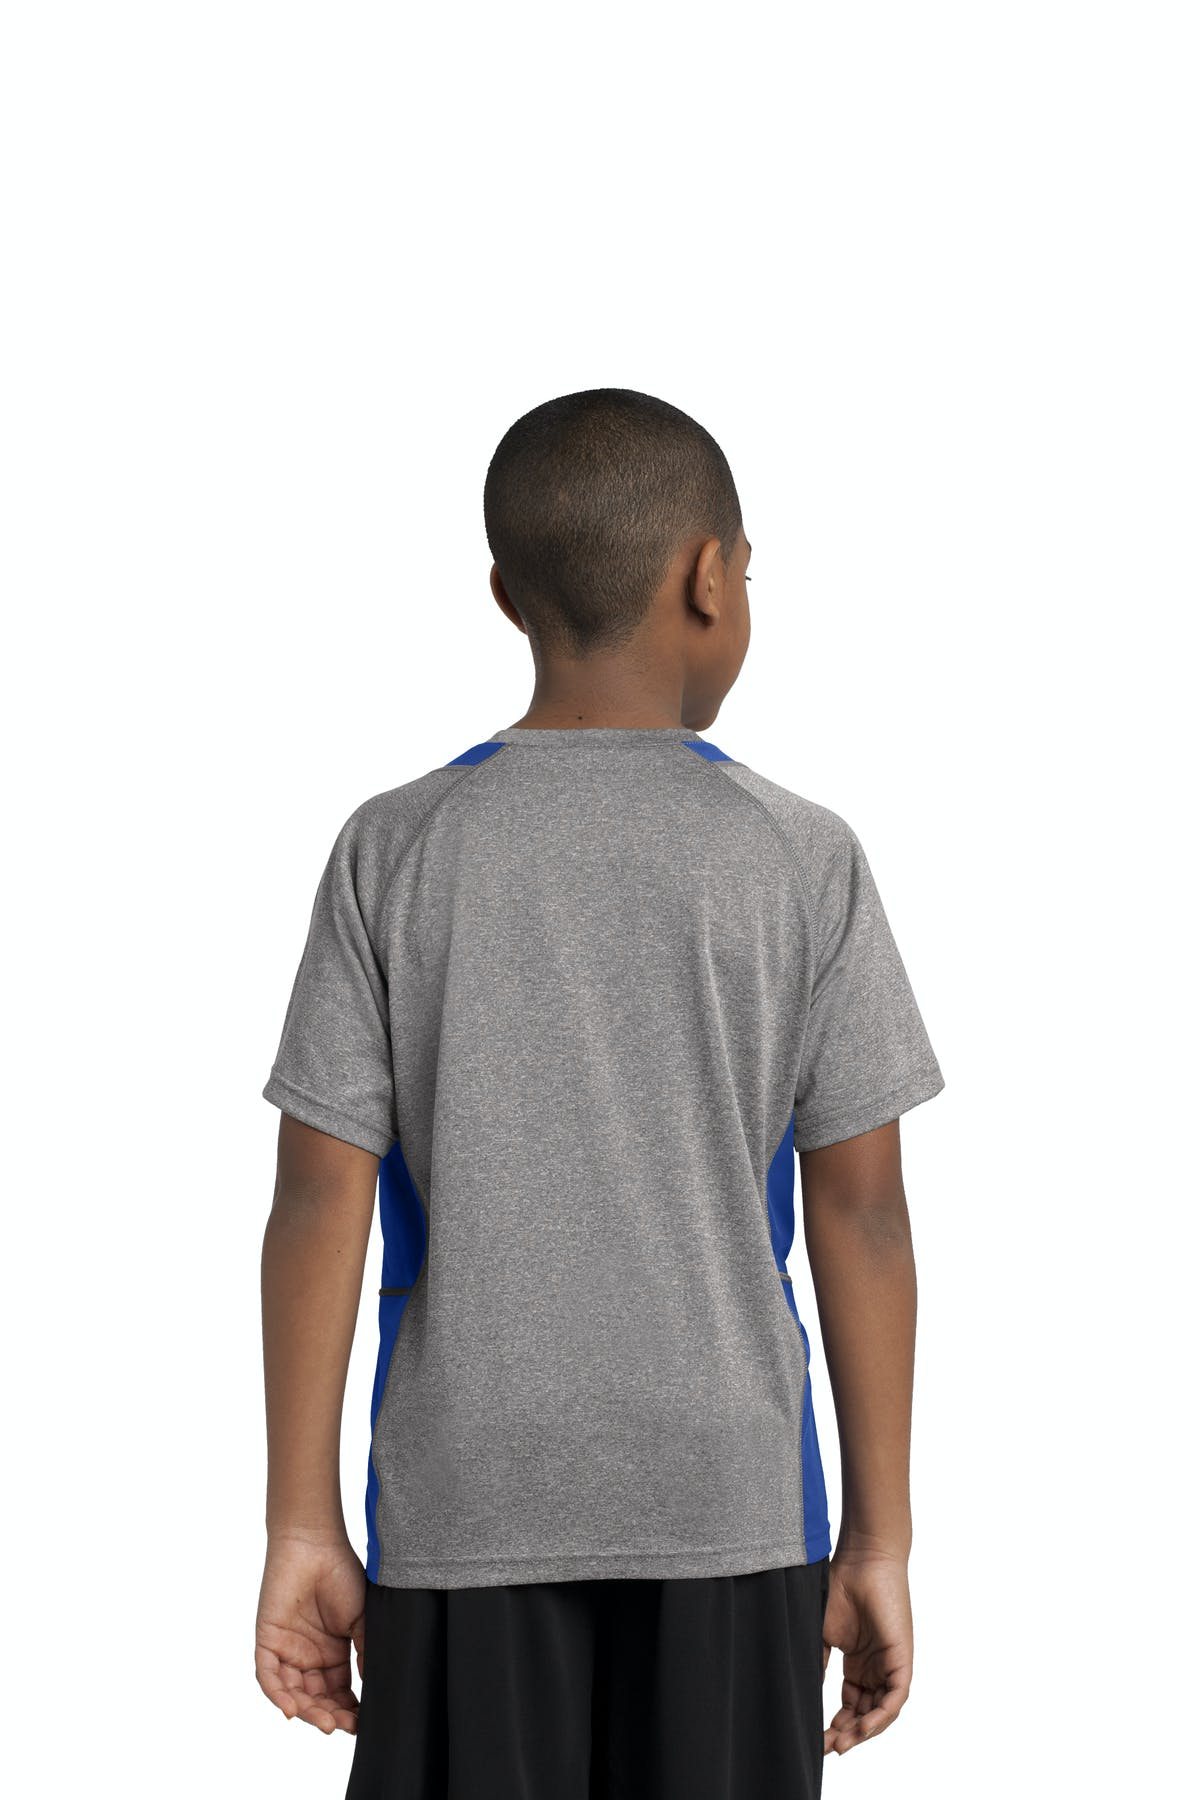 Sport-Tek® Youth Heather Colorblock Contender™ Tee - sold by PRINT CITY GRAPHICS, INC